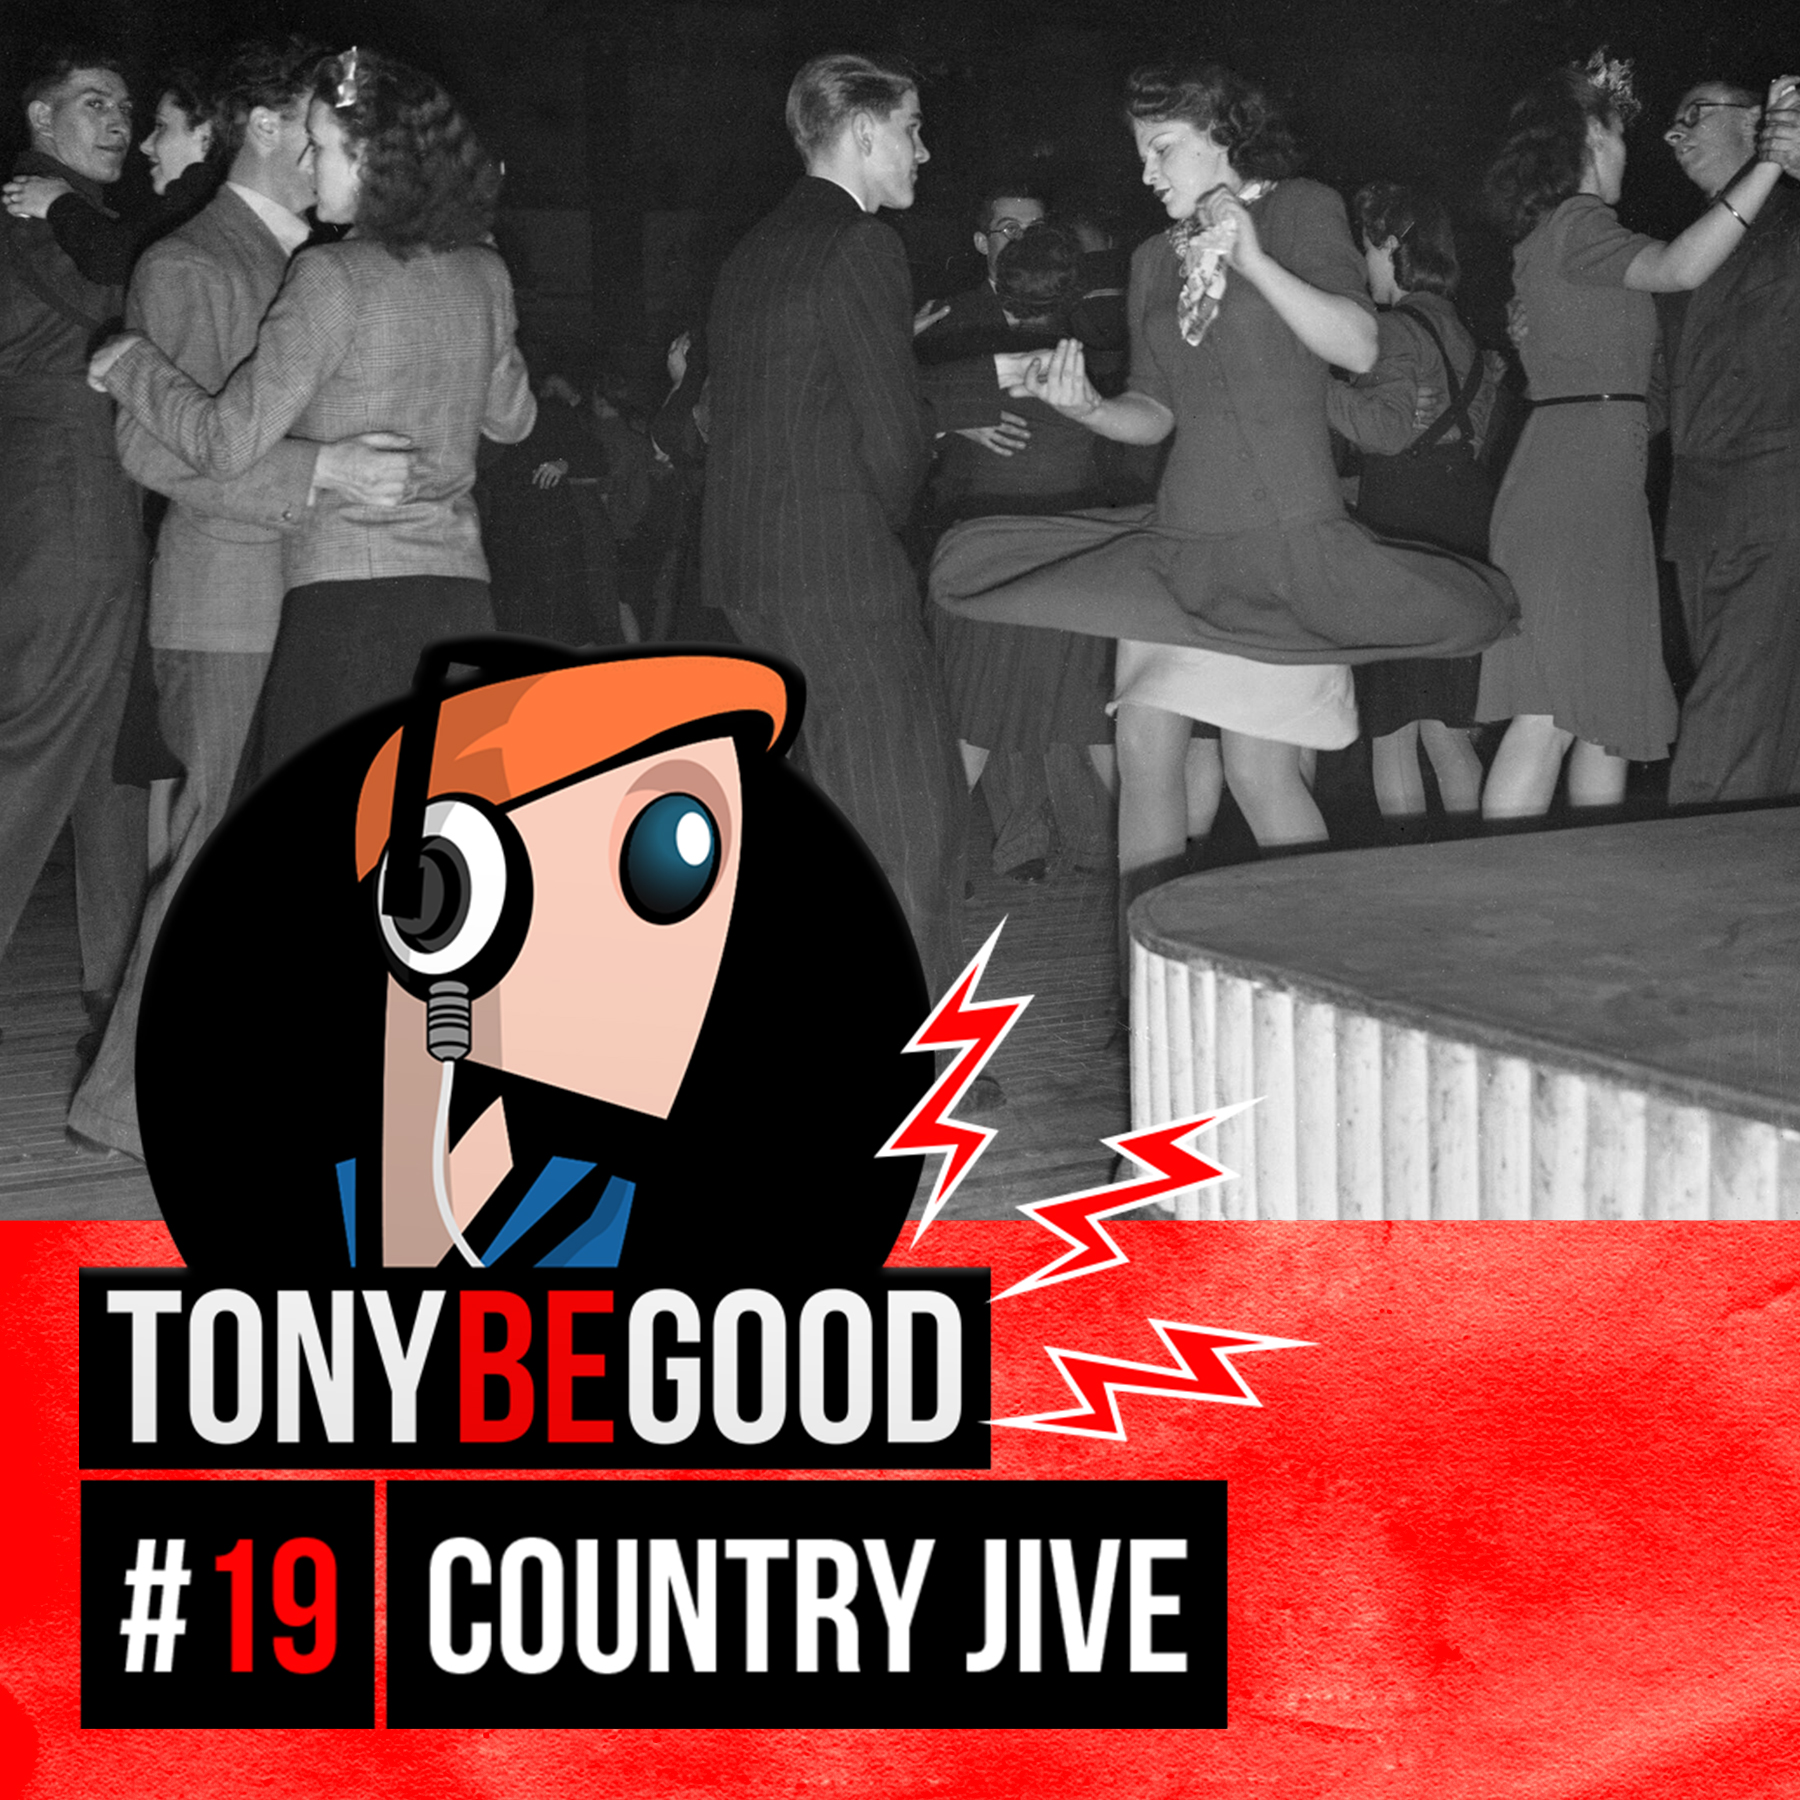 Tony Be Good - épisode - 19 - Country Jive